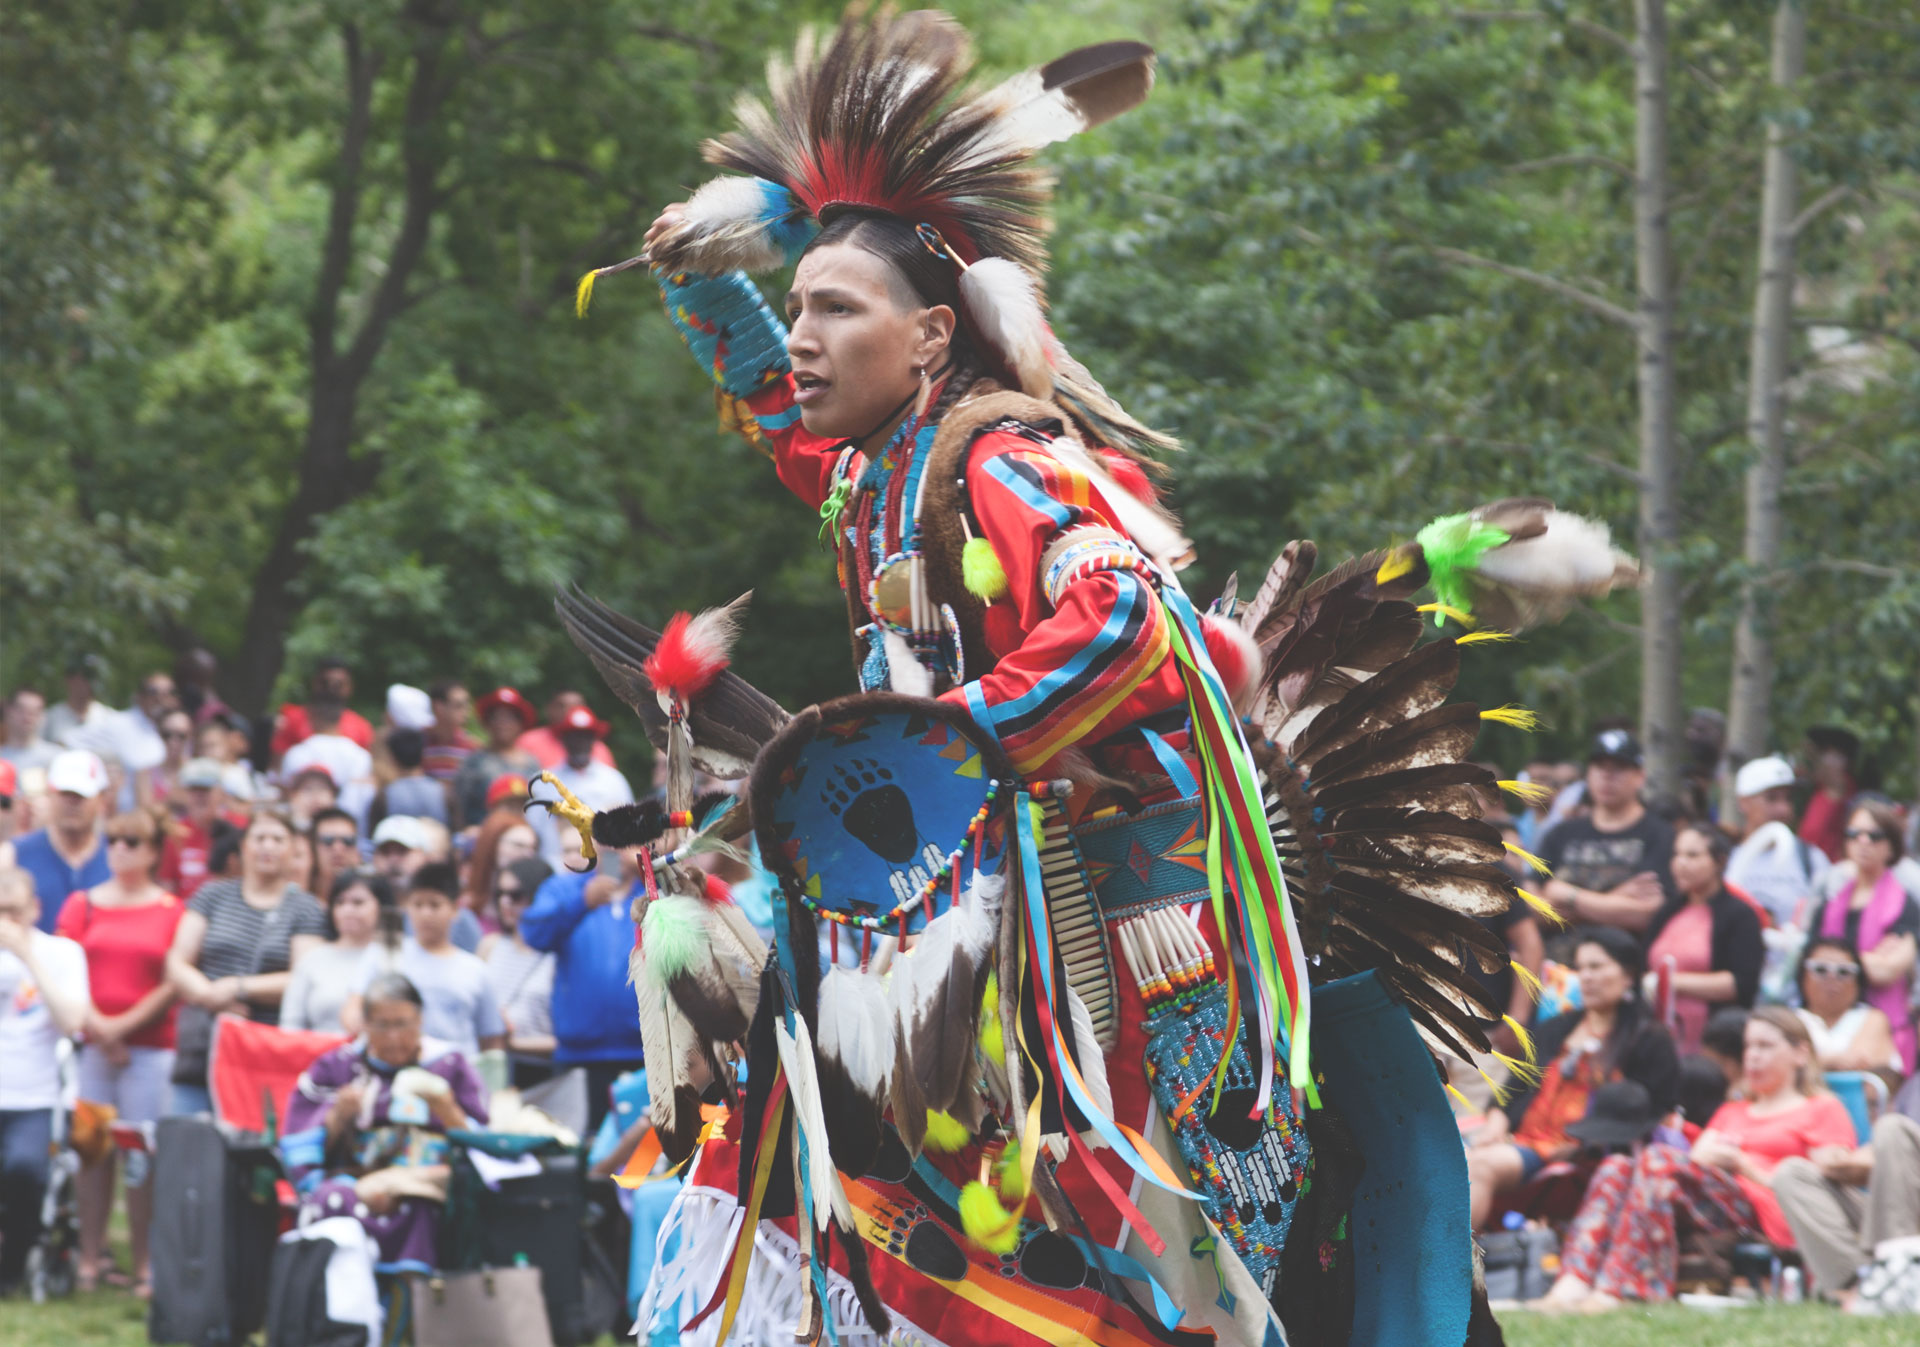 Celebrate Canada Day with the Powwow and Indigenous Showcase on Prince's Island Park.